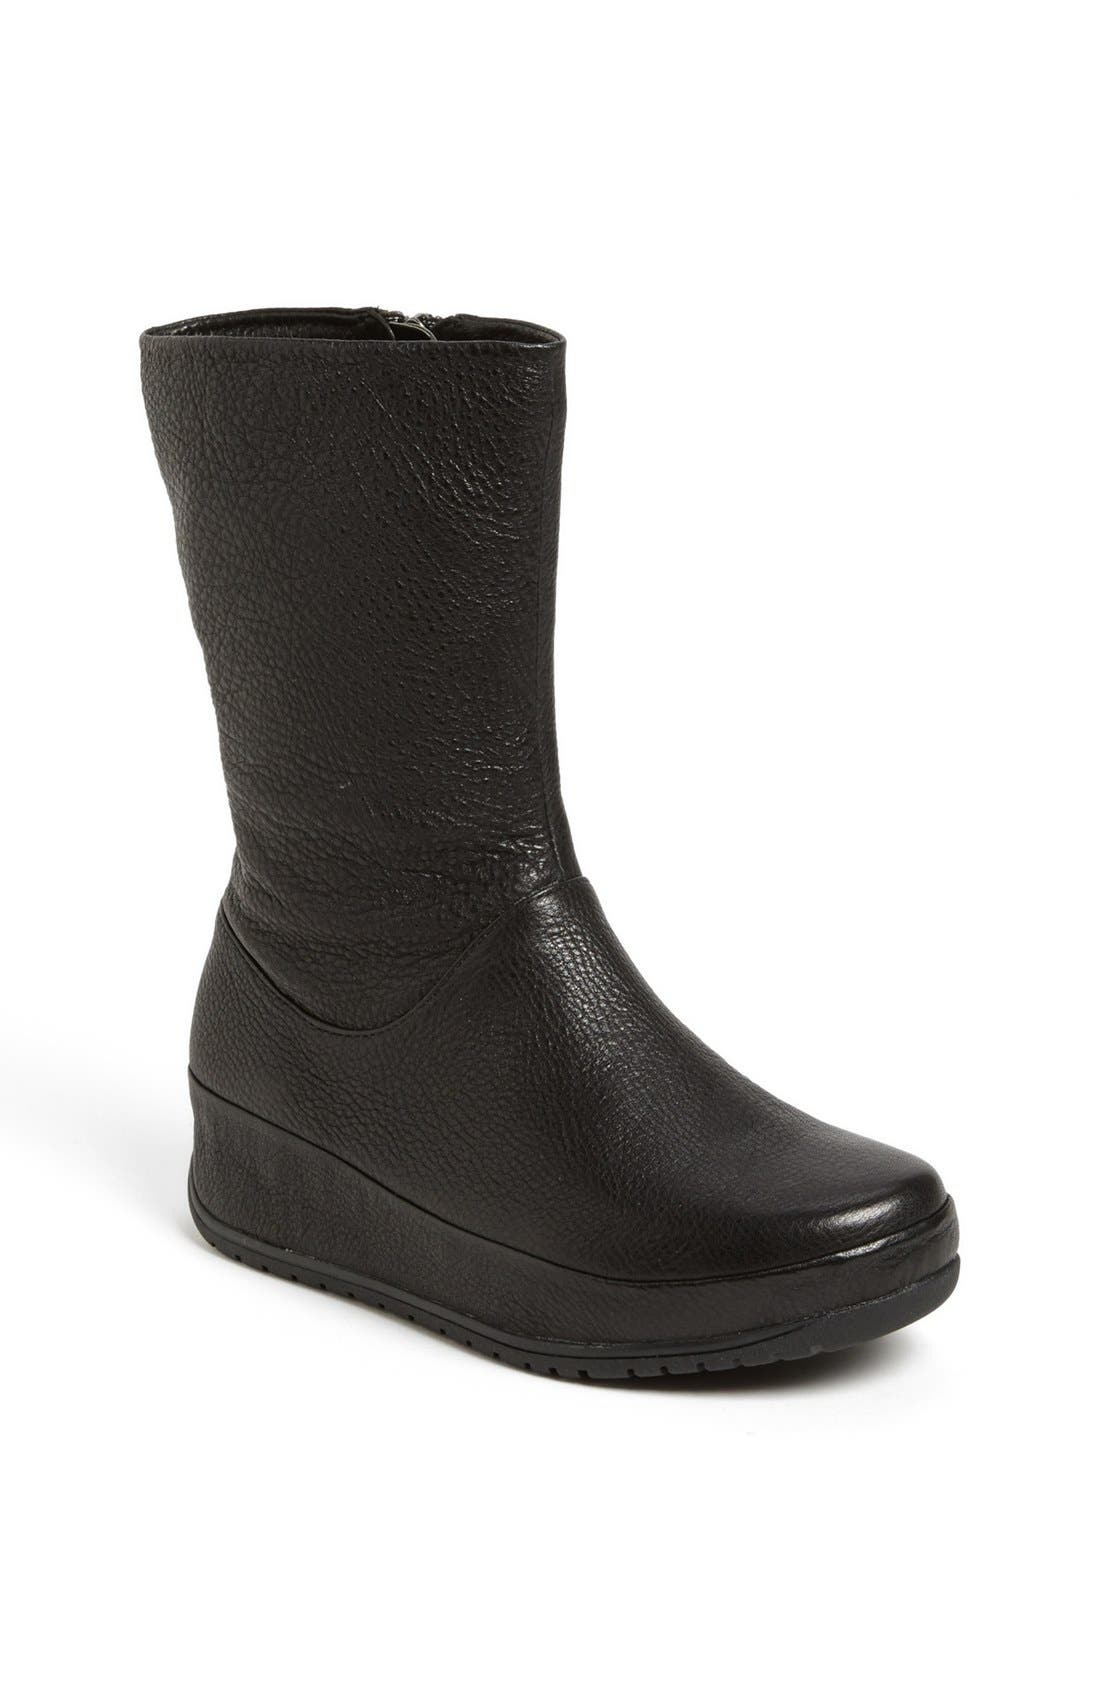 Alternate Image 1 Selected - FitFlop 'Joplin' Leather Boot